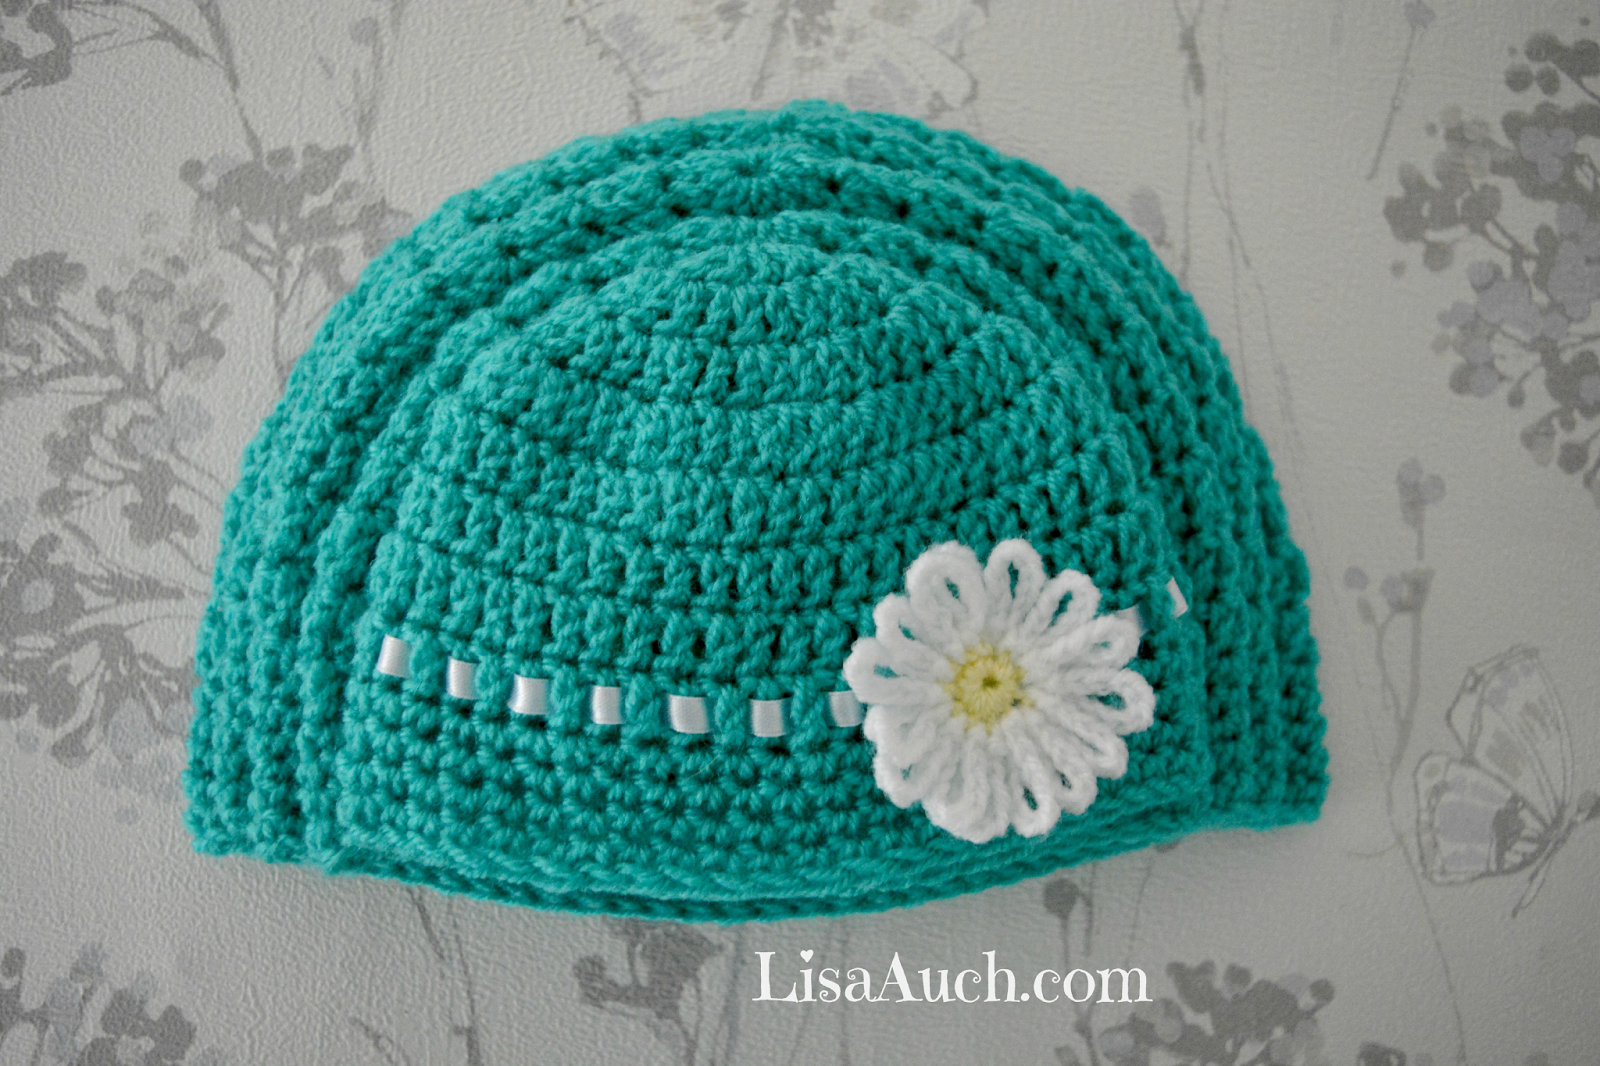 Crochet Hat Patterns Free : ... crochet a hat-crochet baby hat pattern-free crochet patterns-crochet